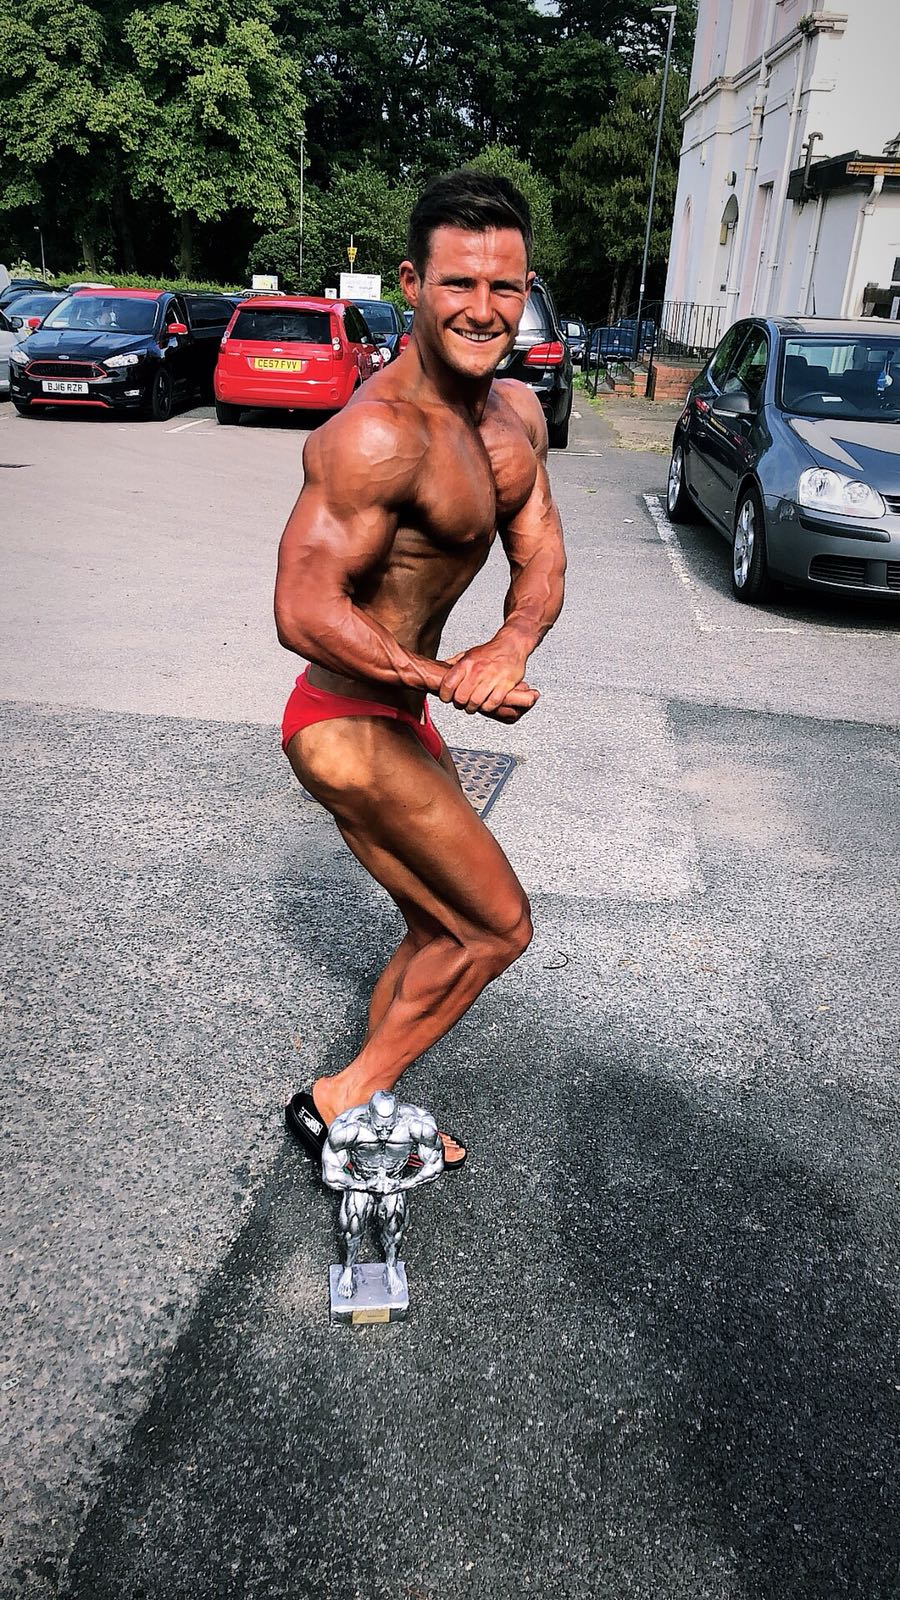 Big shout out and super proud of @jackraygun placed 2nd in middleweight novices UKDFBA.